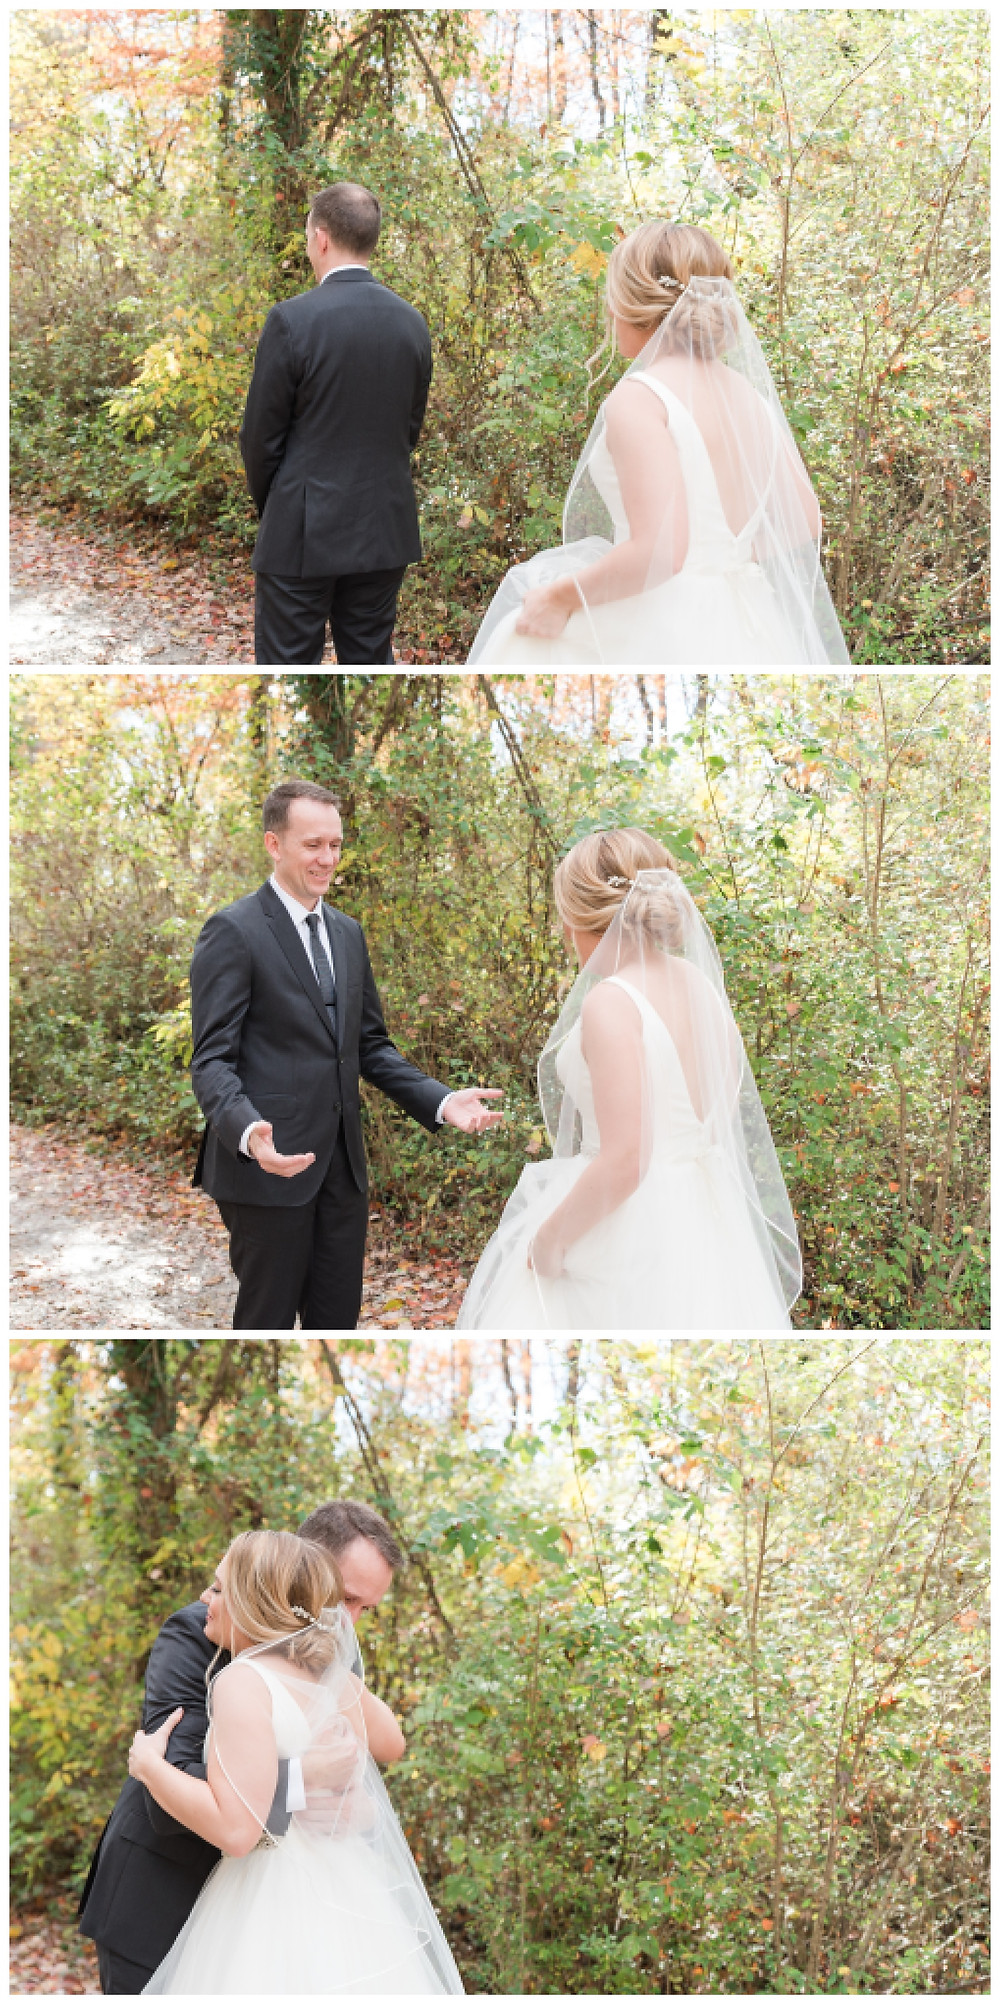 Daddy-daughter-first-look Historic-shady-lane-cat-granger-photography-fall-wedding-stella-york